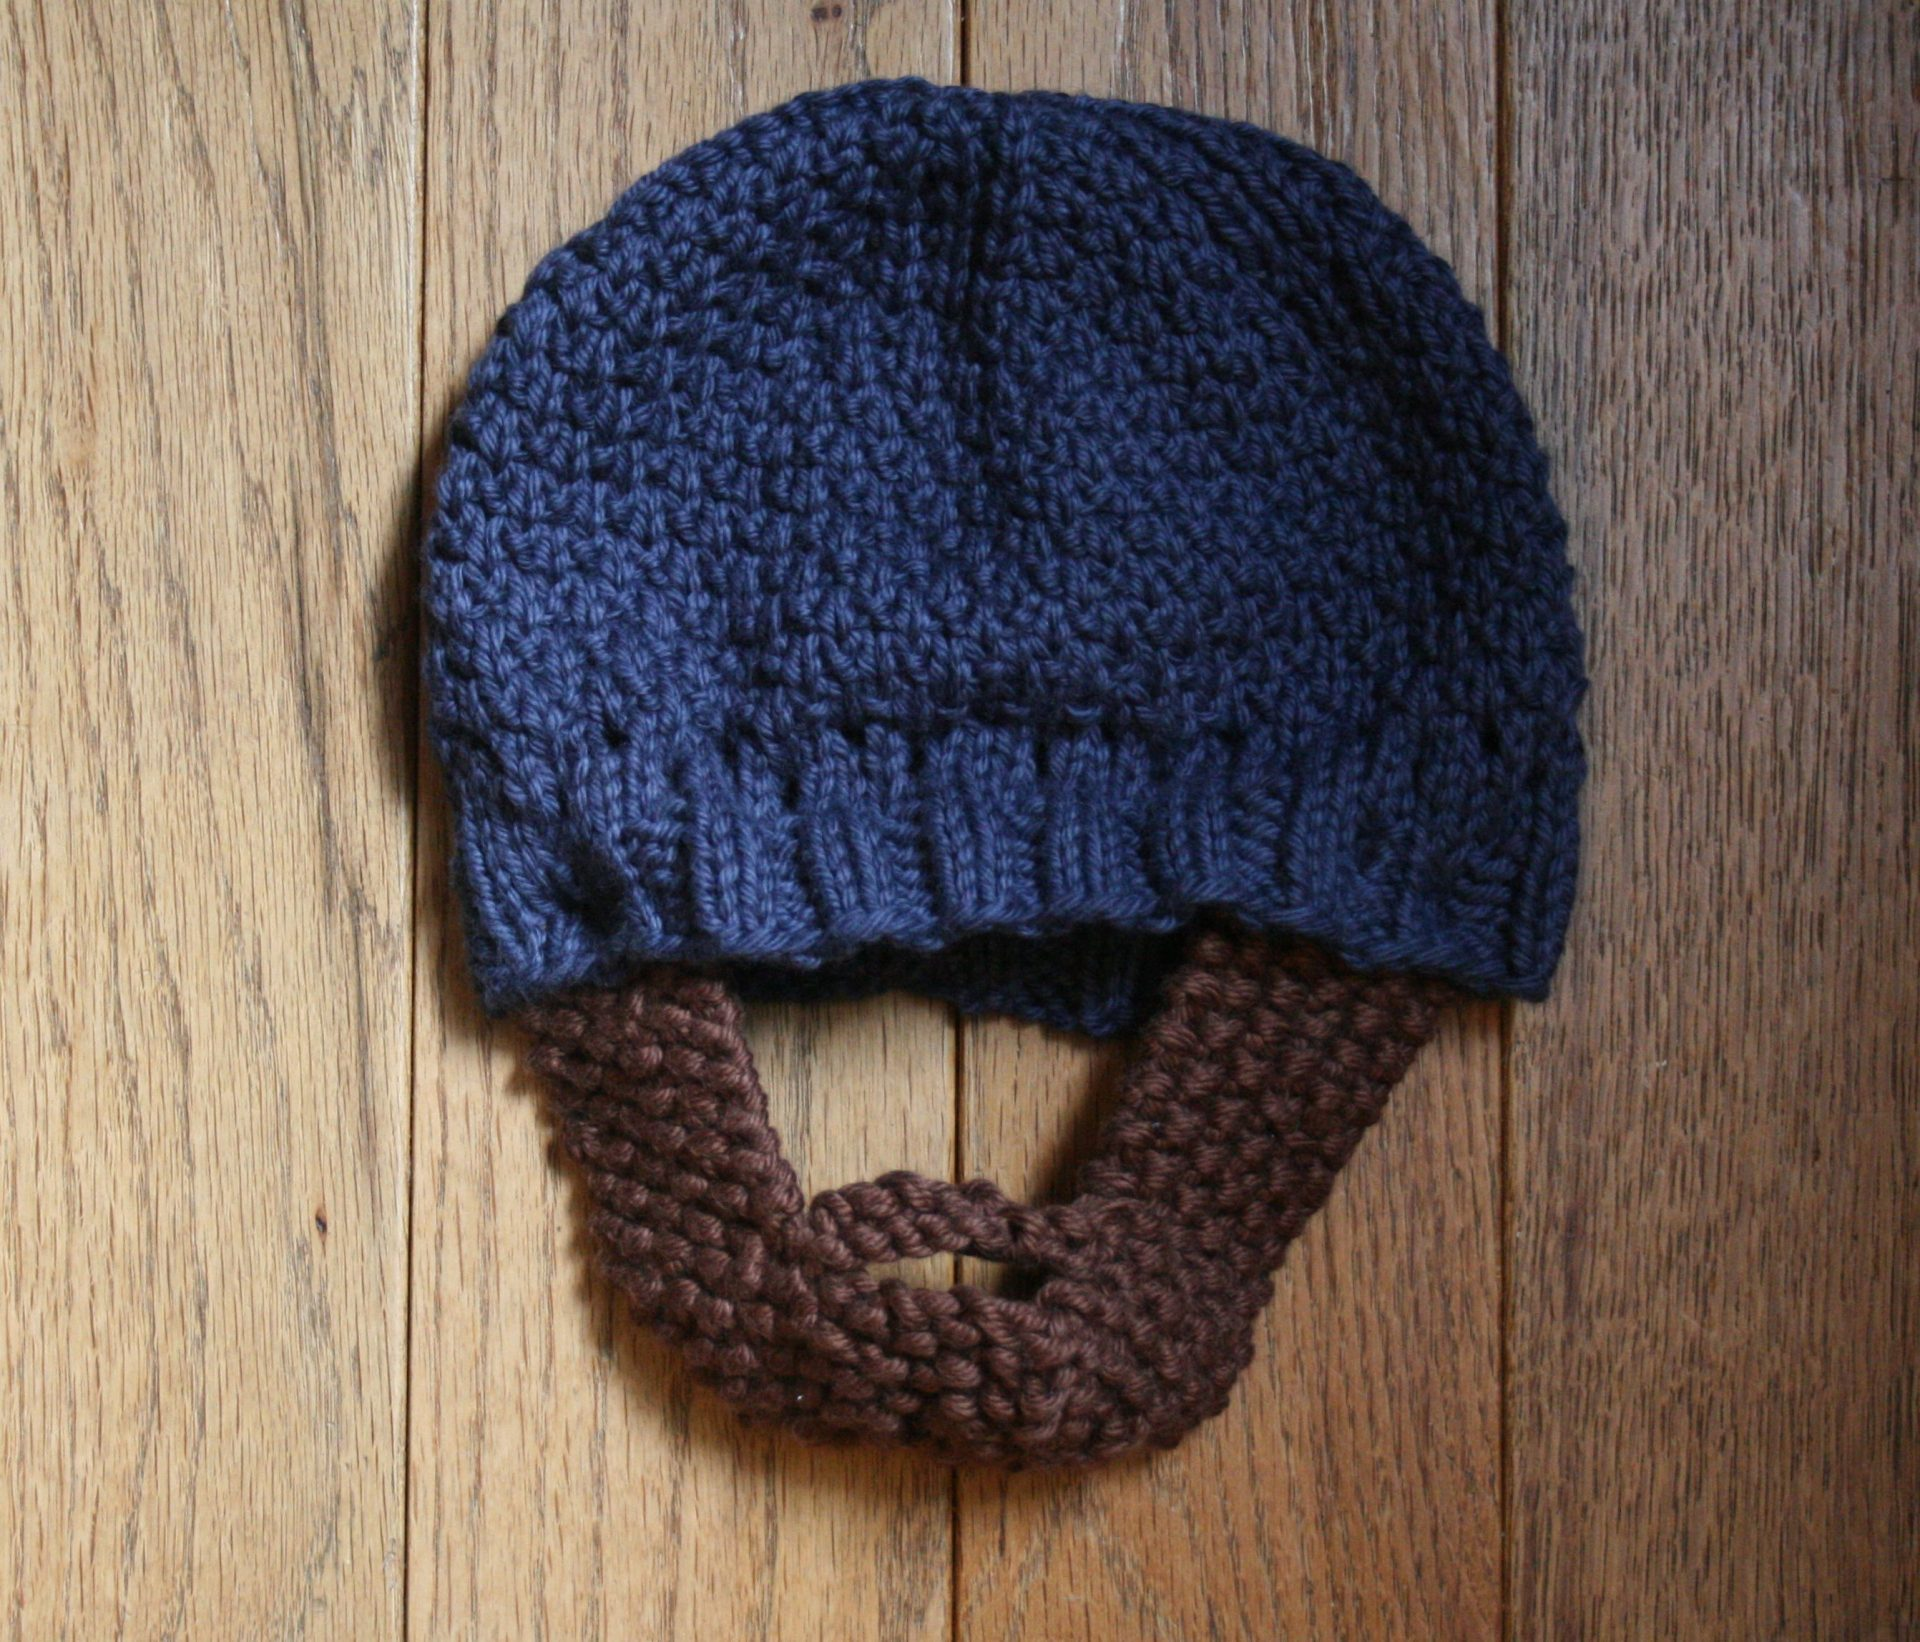 Patterned Hat With Beard - Nicole VanPutten c7b784709e7